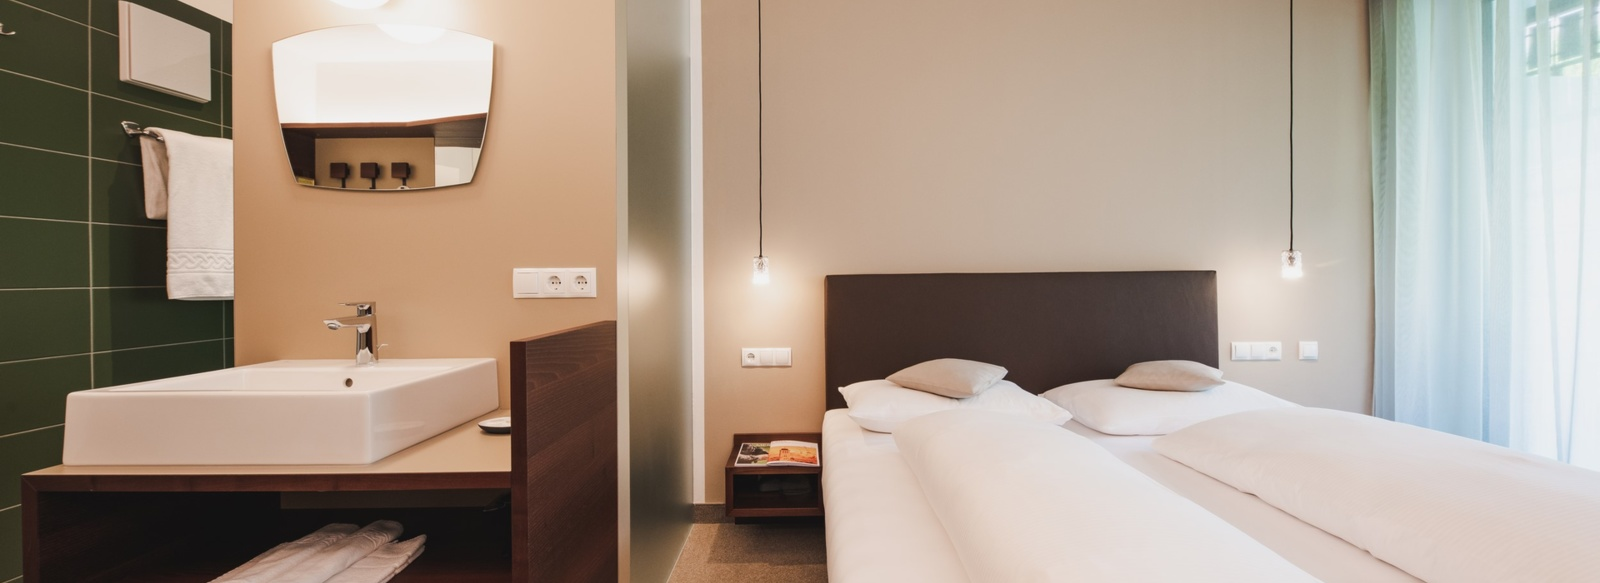 The rooms in the hotel Braunsbergerhof in Lana